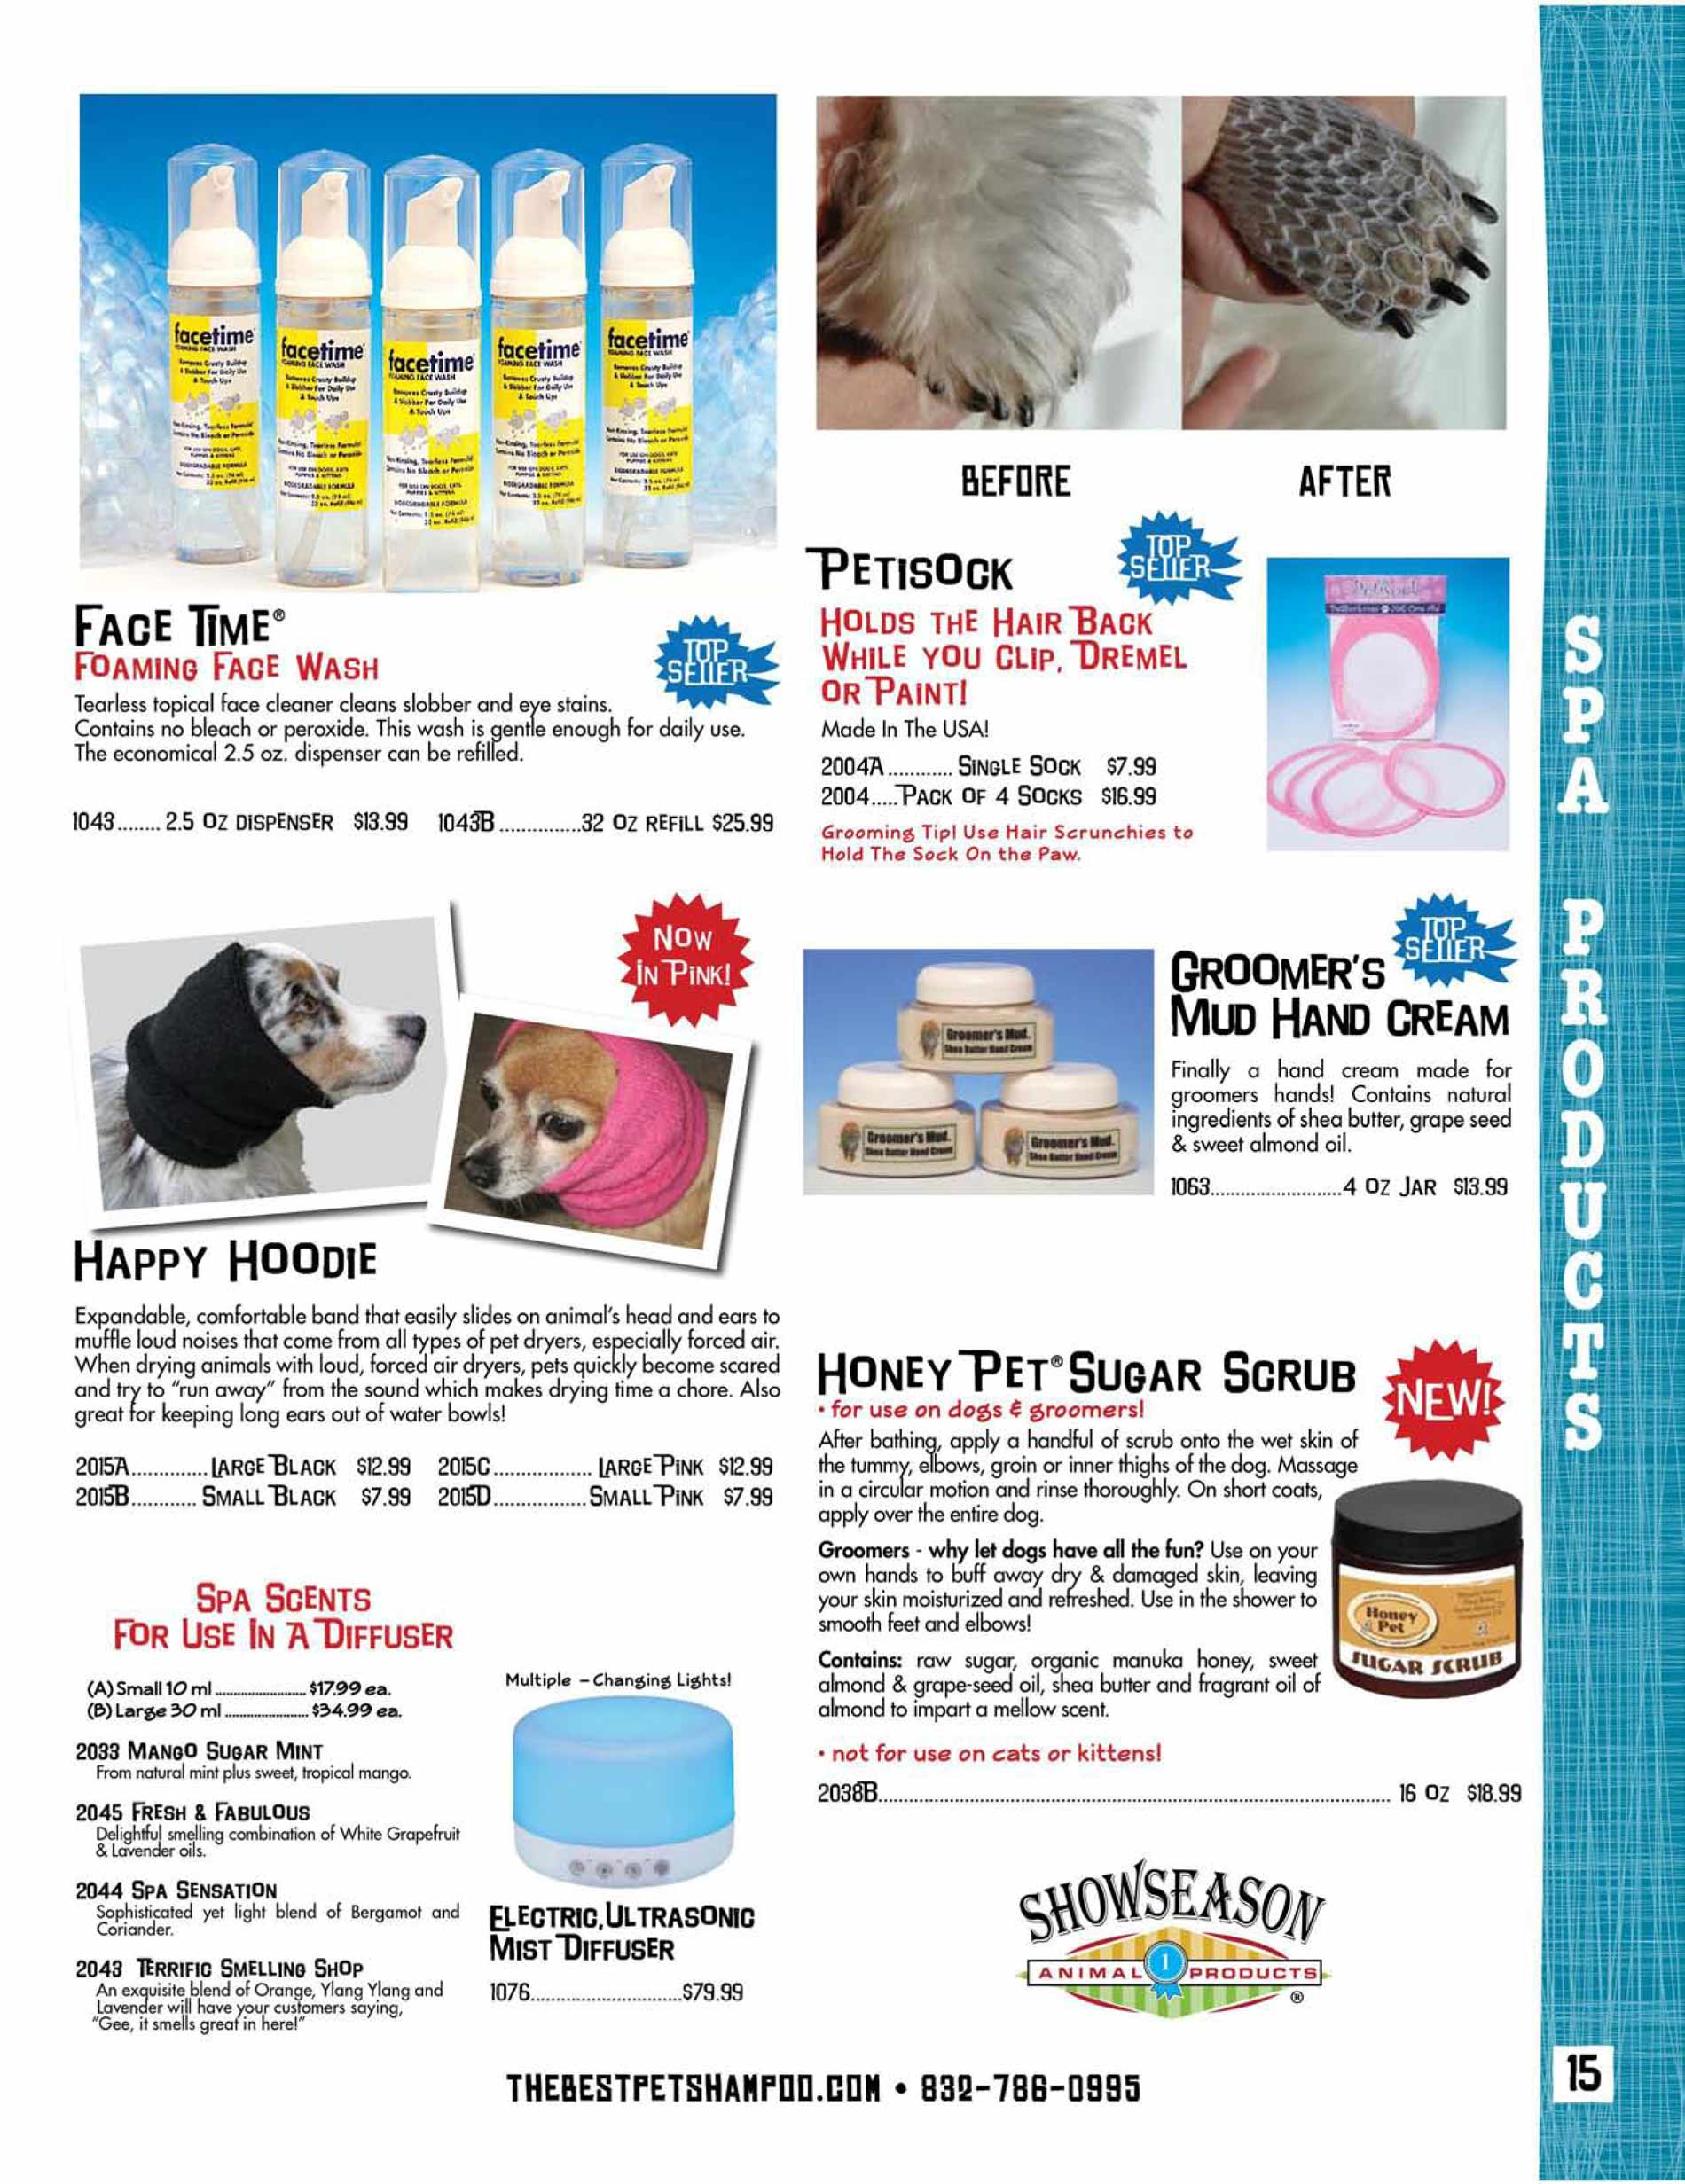 Spa-Products-ShowseasonConsumerApril2015-14